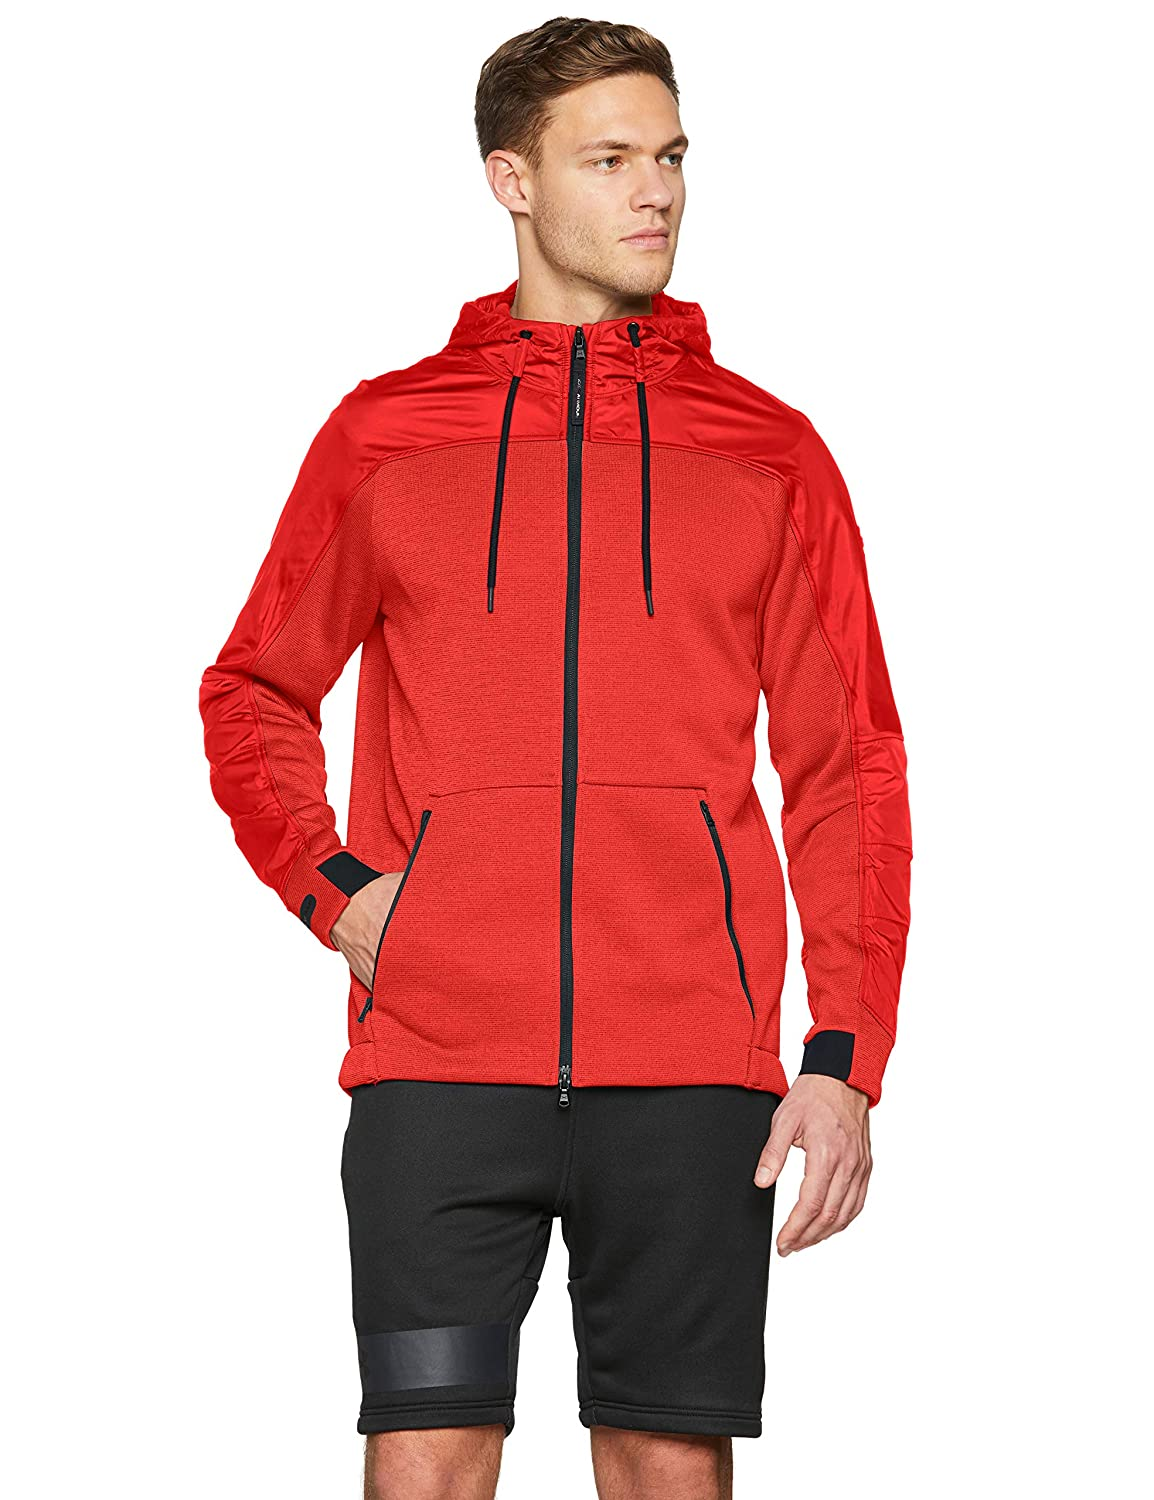 Under Armour Coldgear Swacket Chaqueta Deportiva, Hombre